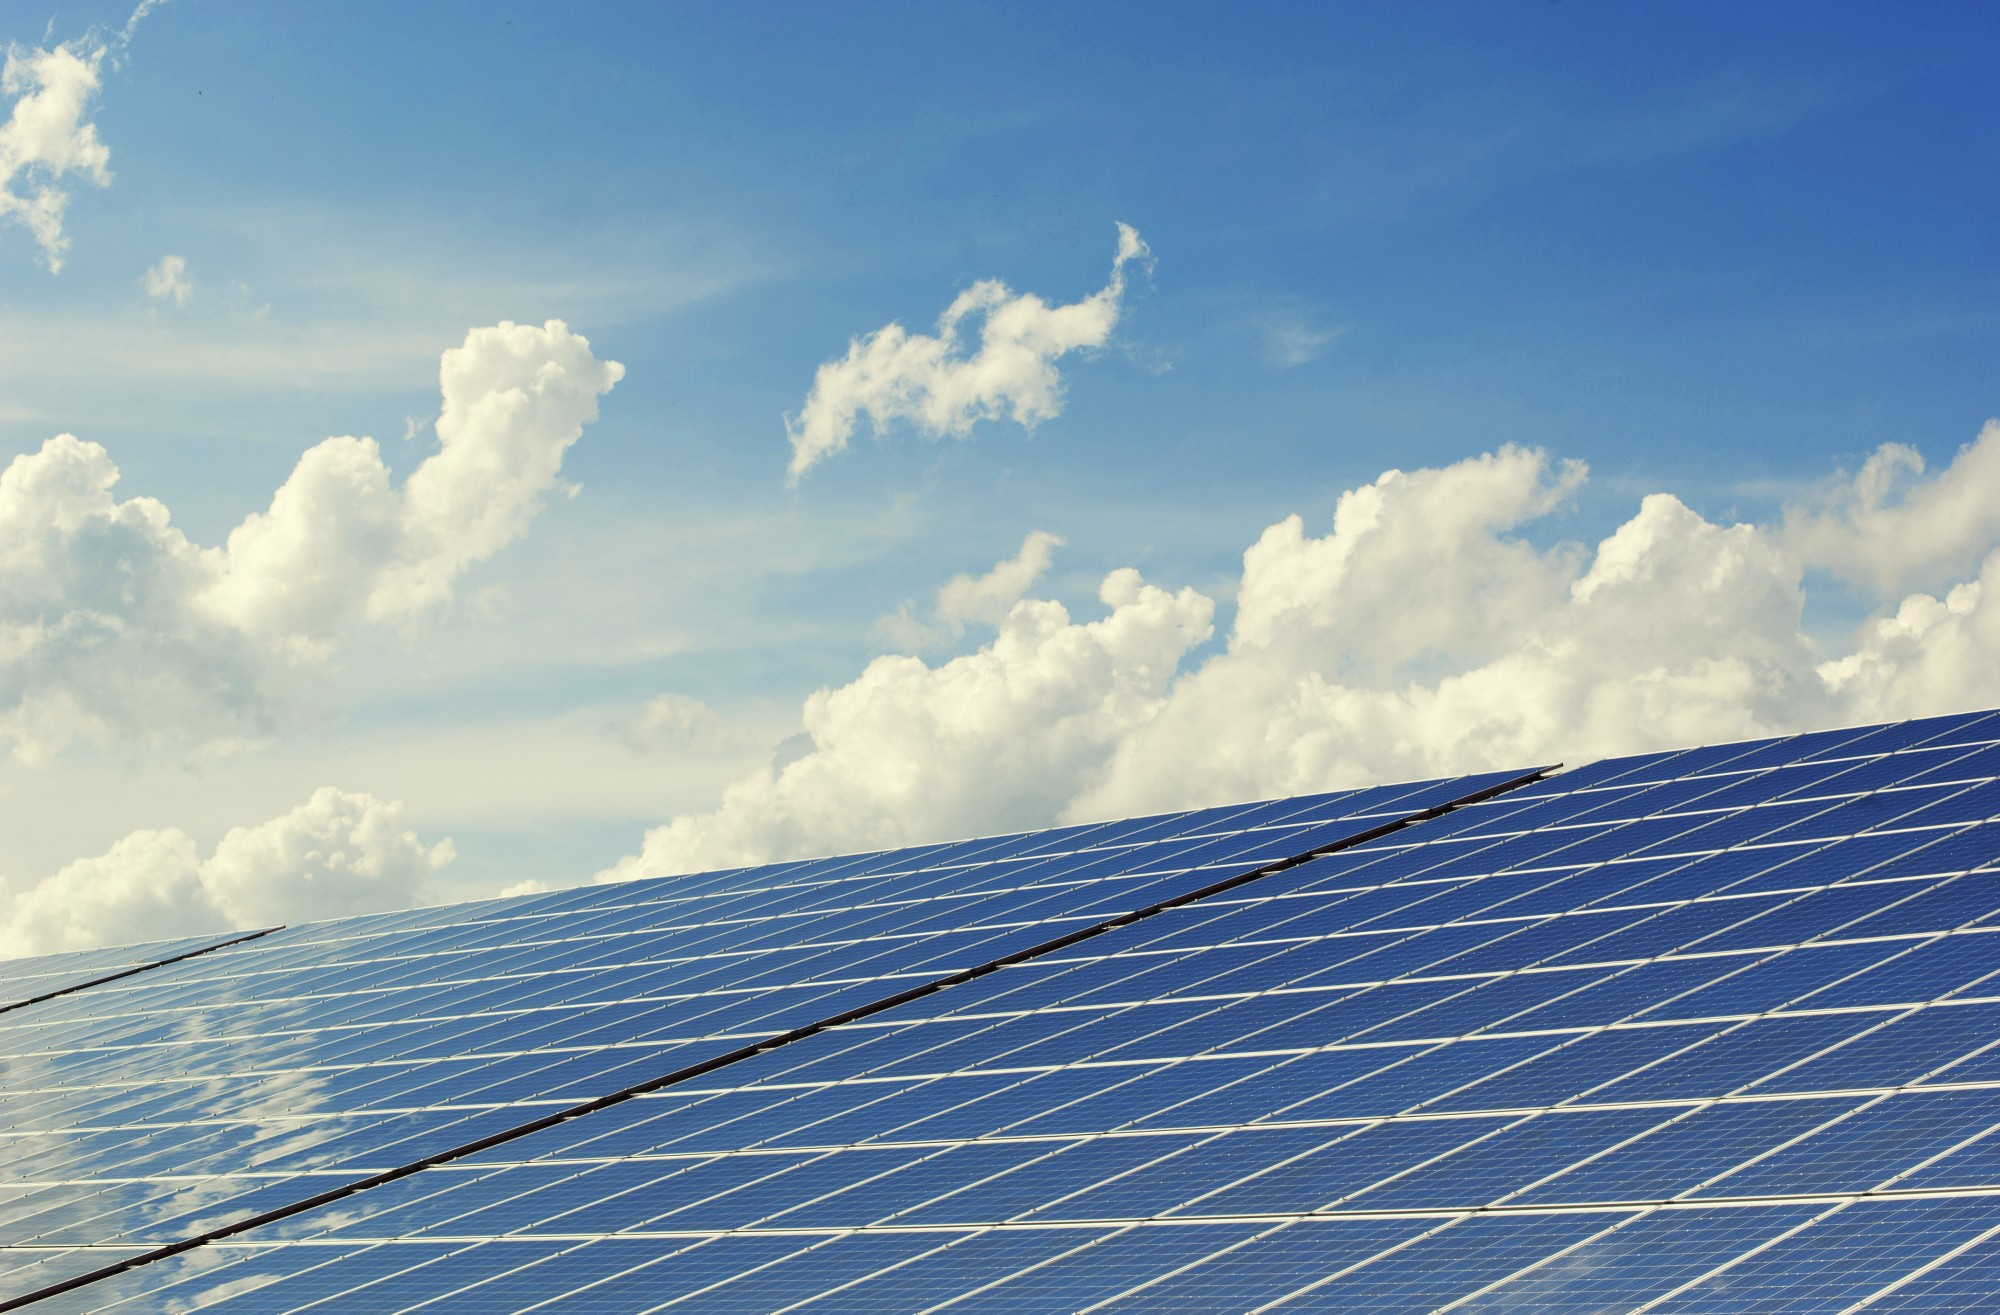 7 Tips for Choosing the Best Solar Power System for Your Home